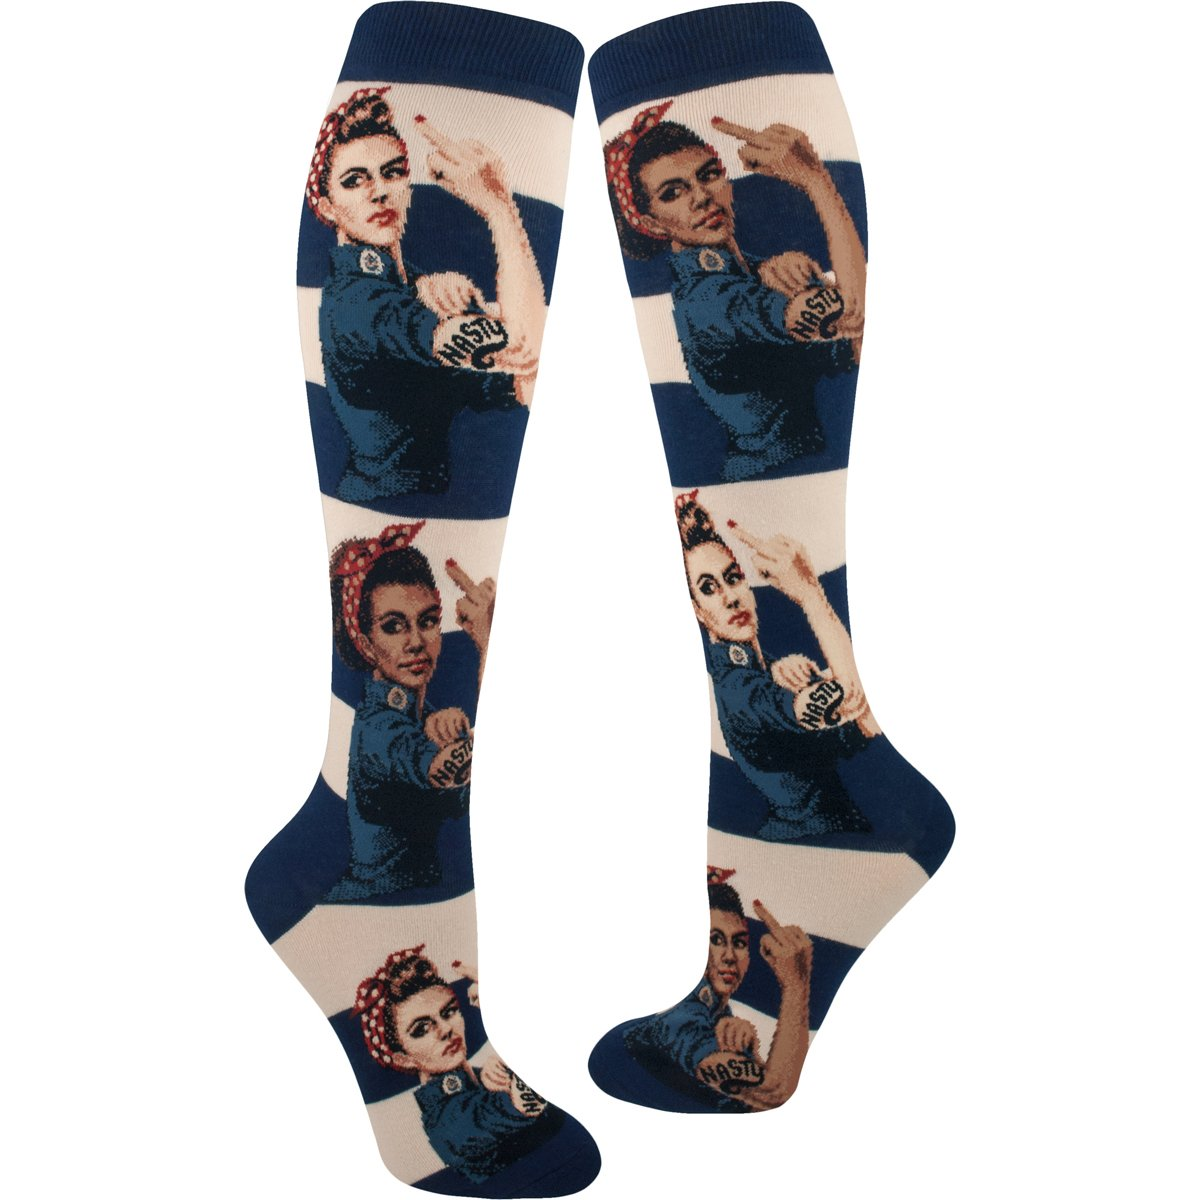 Women's Nasty Rosie The Riveter Knee High